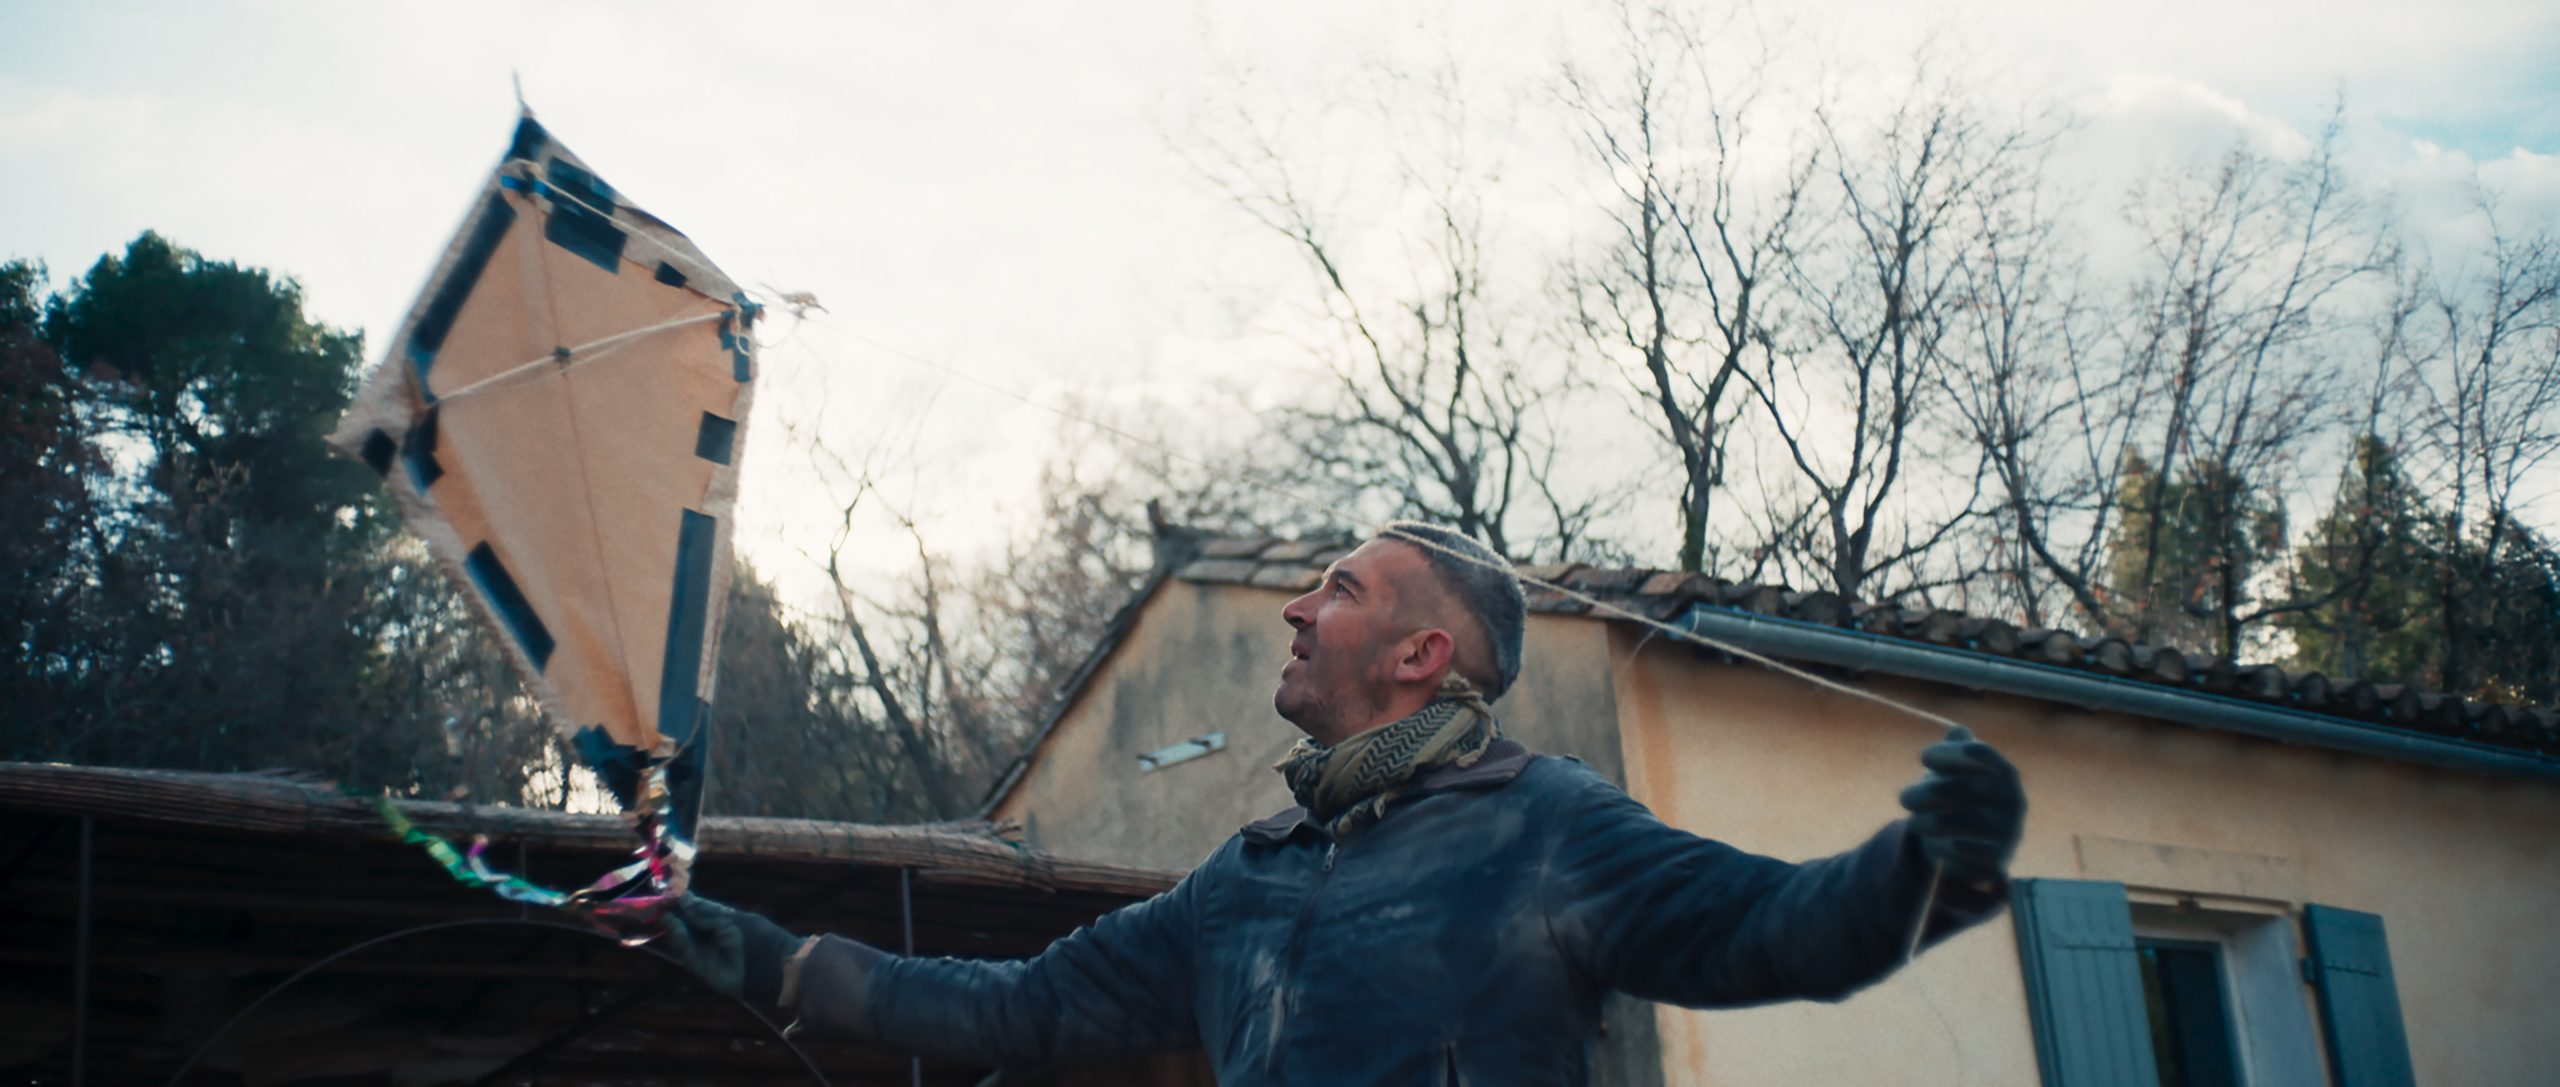 Still from the film Un Chanteur Invisible. Gabriel is flying a kite.